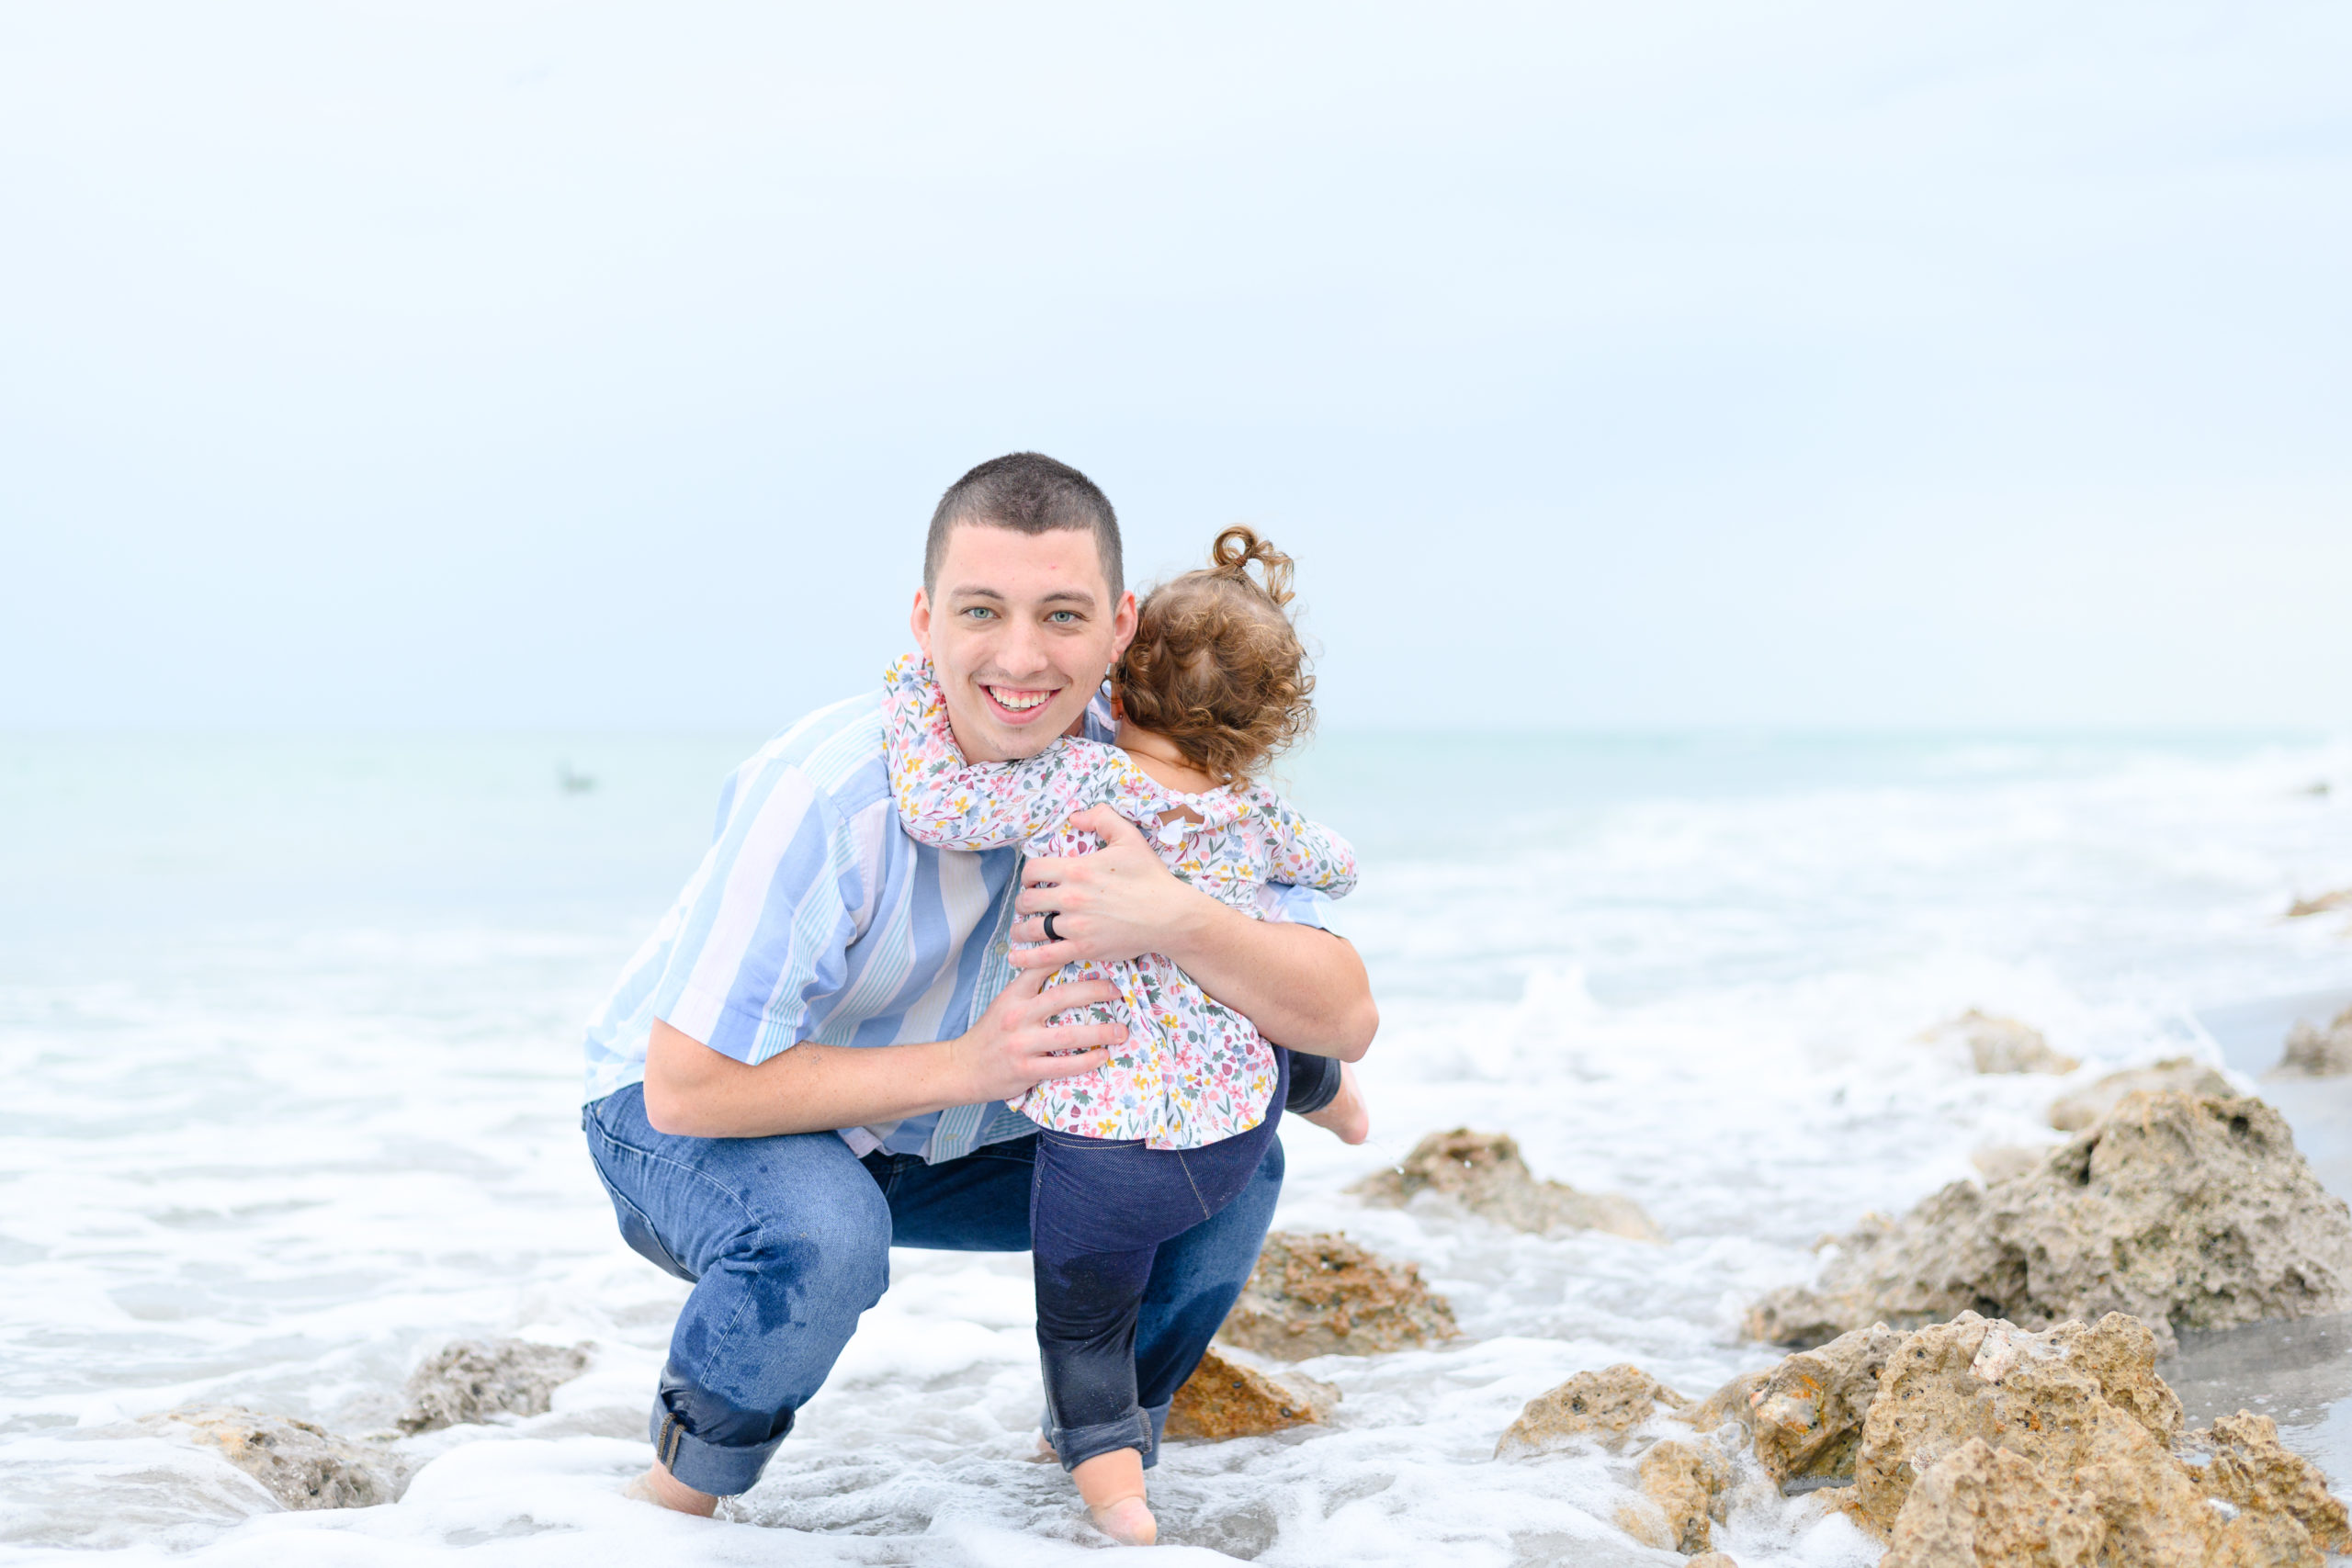 Father and daughter image. Father is hugging young daughter while she looks out at the water. They are both in the surf as the water comes lapping over the rocks. Taken during family beach session in Venice Beach